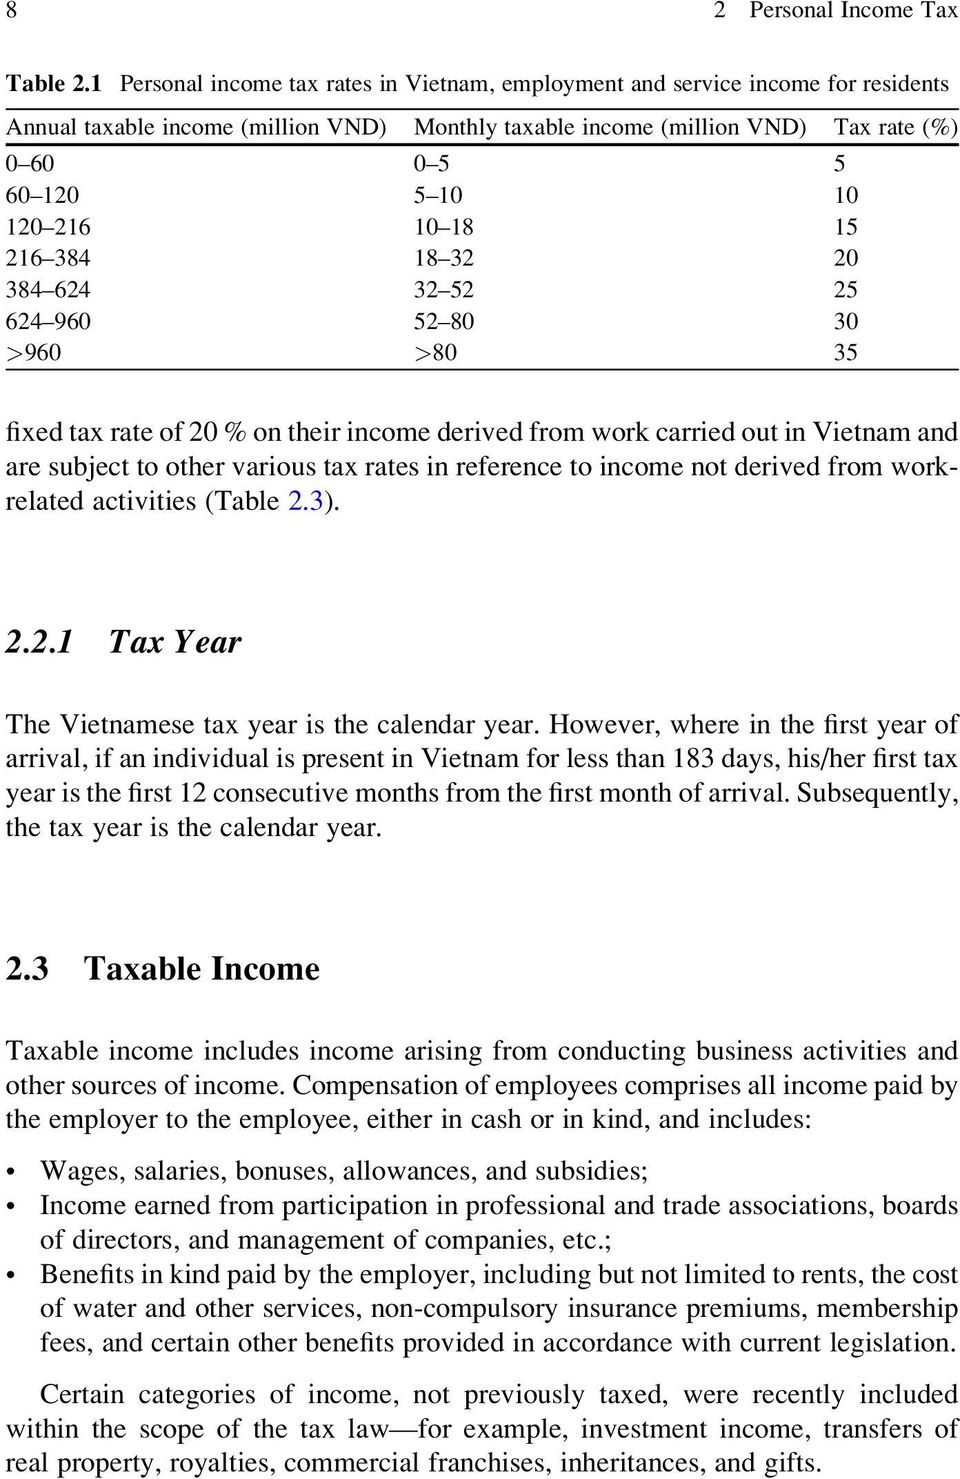 216 10 18 15 216 384 18 32 20 384 624 32 52 25 624 960 52 80 30 >960 >80 35 fixed tax rate of 20 % on their income derived from work carried out in Vietnam and are subject to other various tax rates